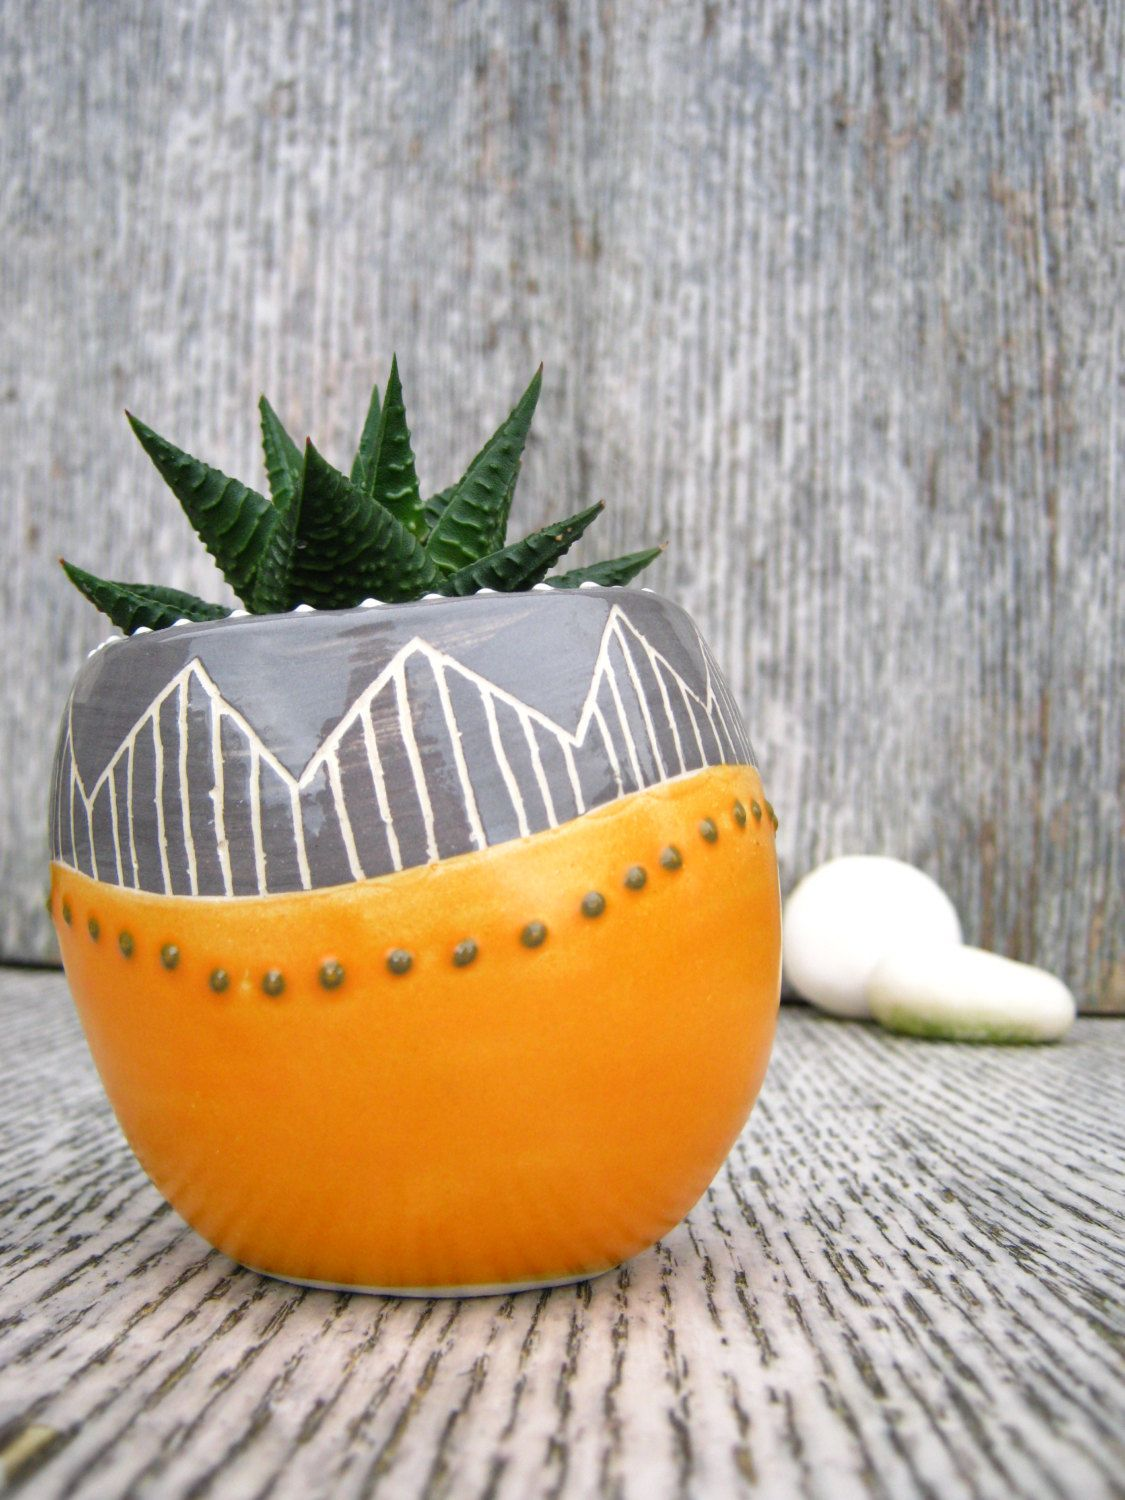 Ceramic Pottery For Plants Handmade Ceramic Succulent Cactus Pot Planter In Orange